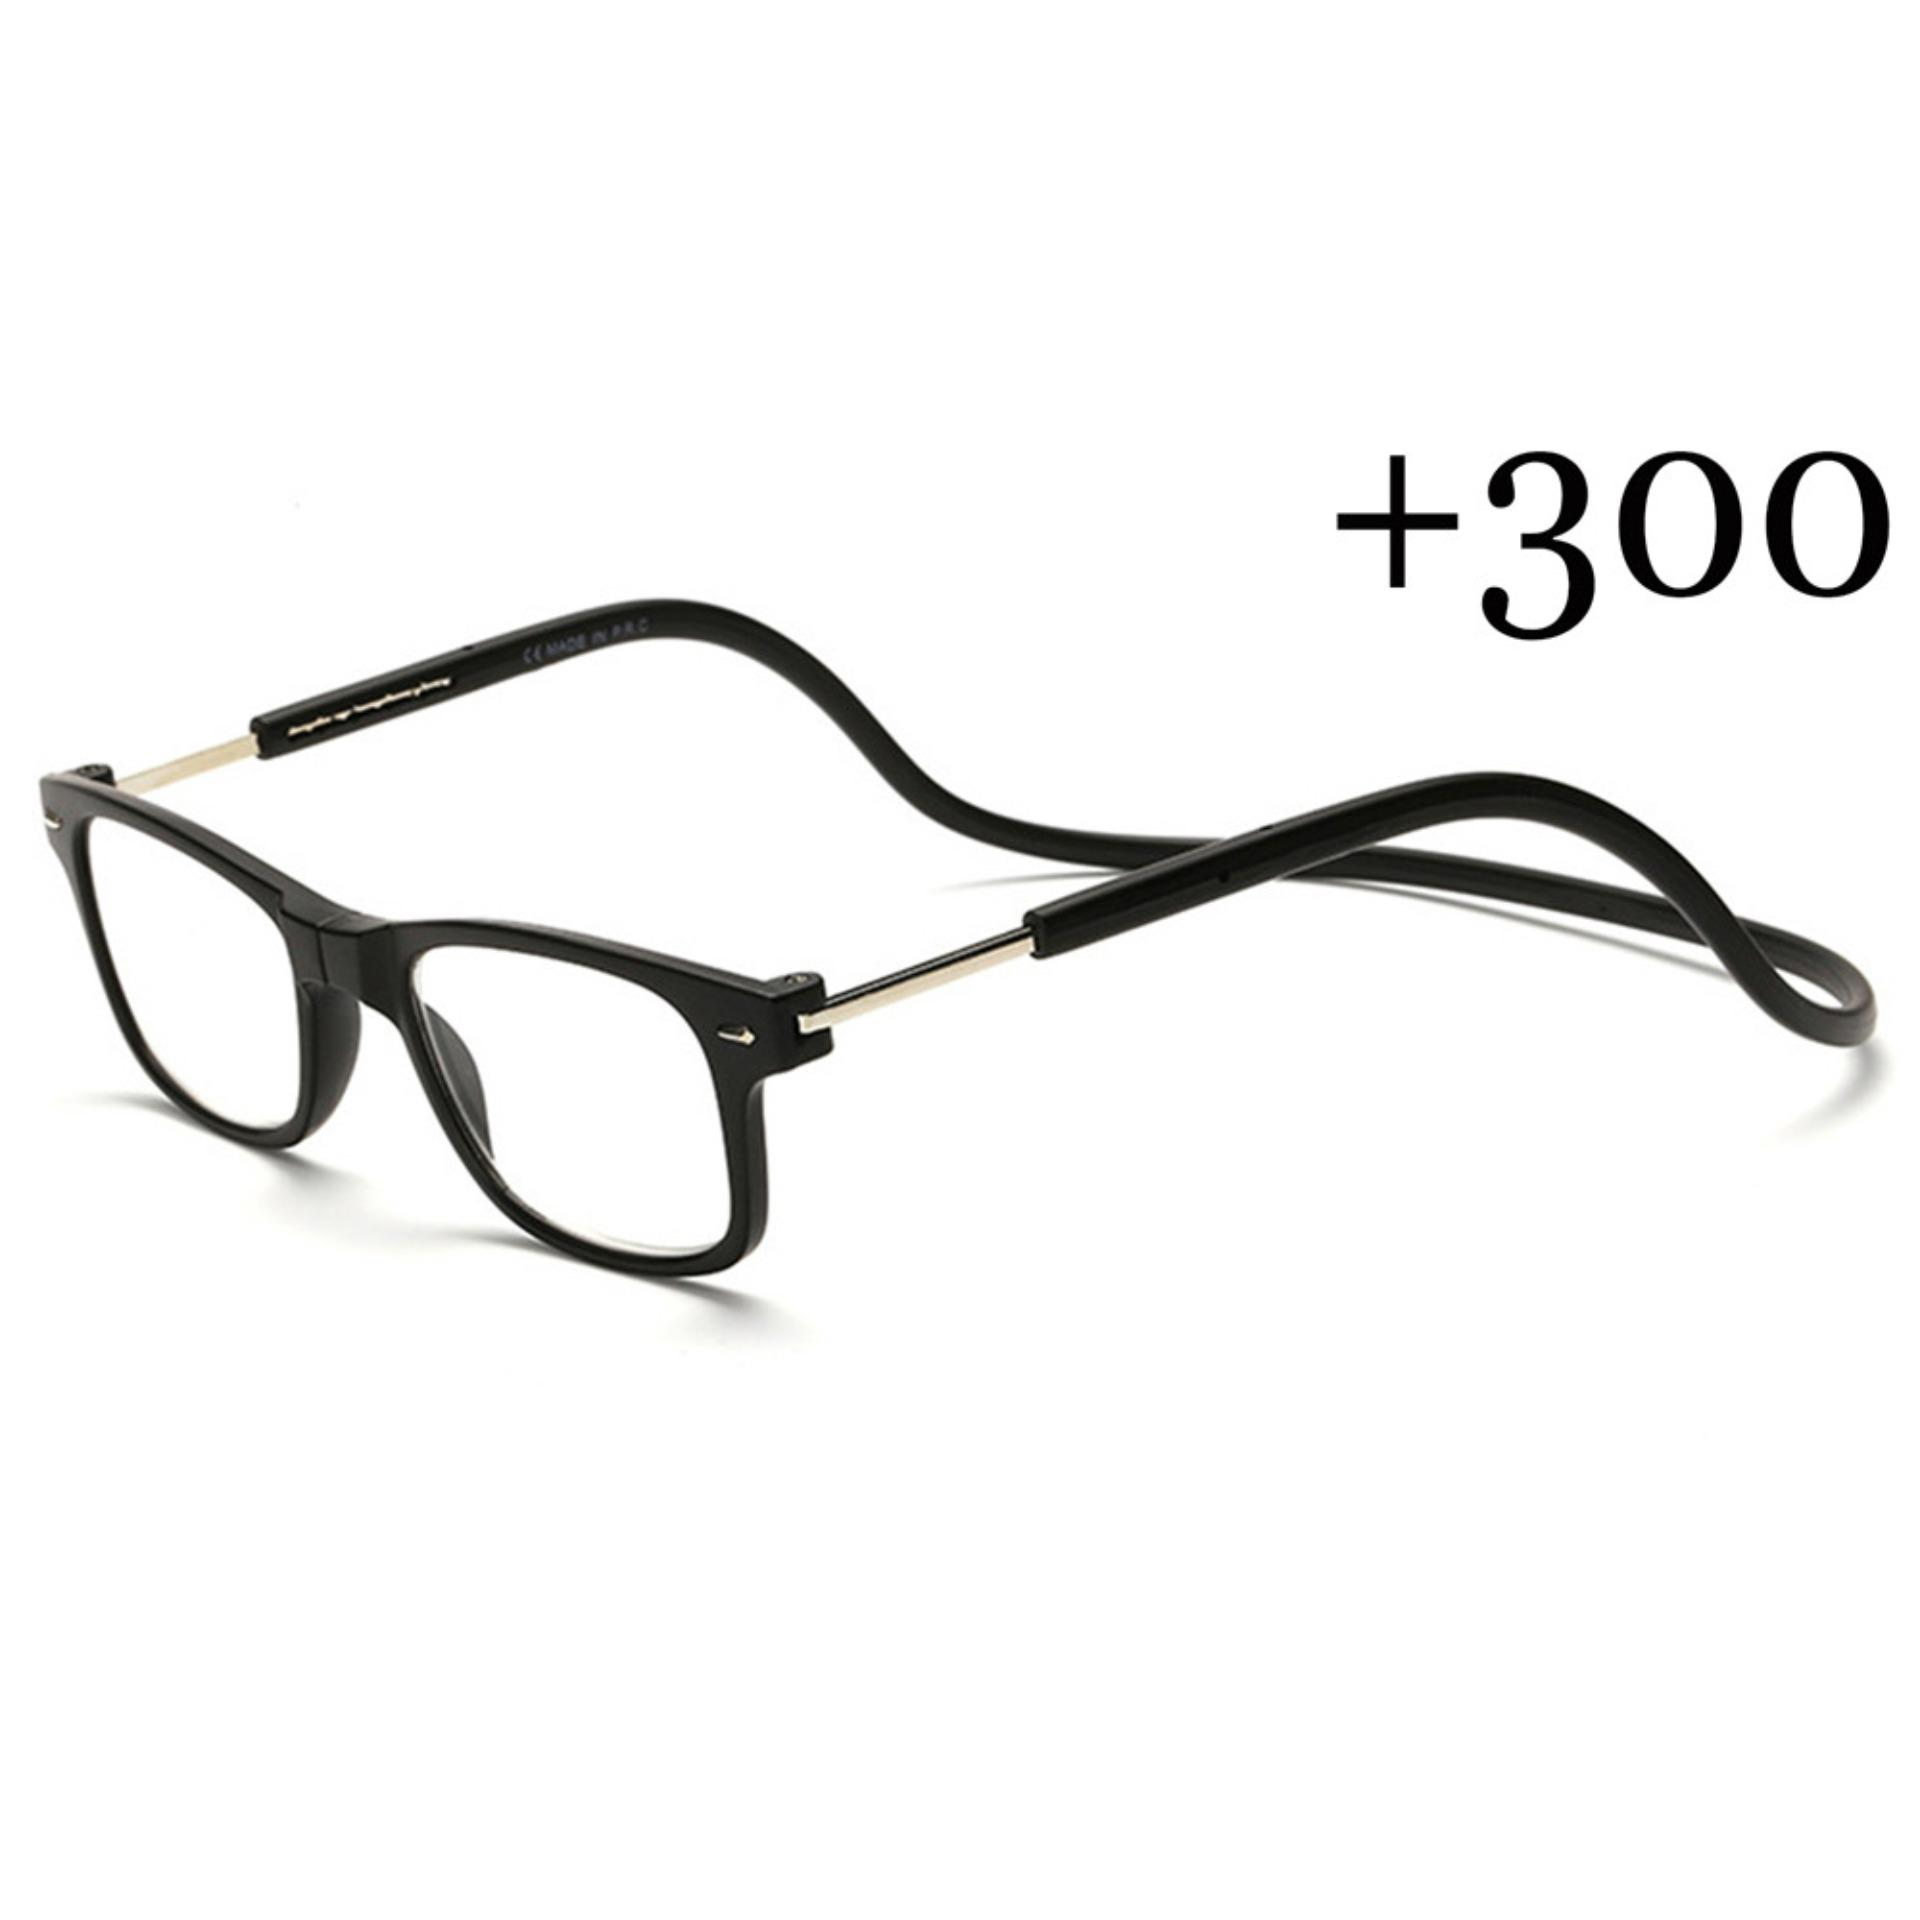 86d7633070d New Magnetic Folding Readers Reading Glasses +3.00 Neck Hang Unisex Black -  intl